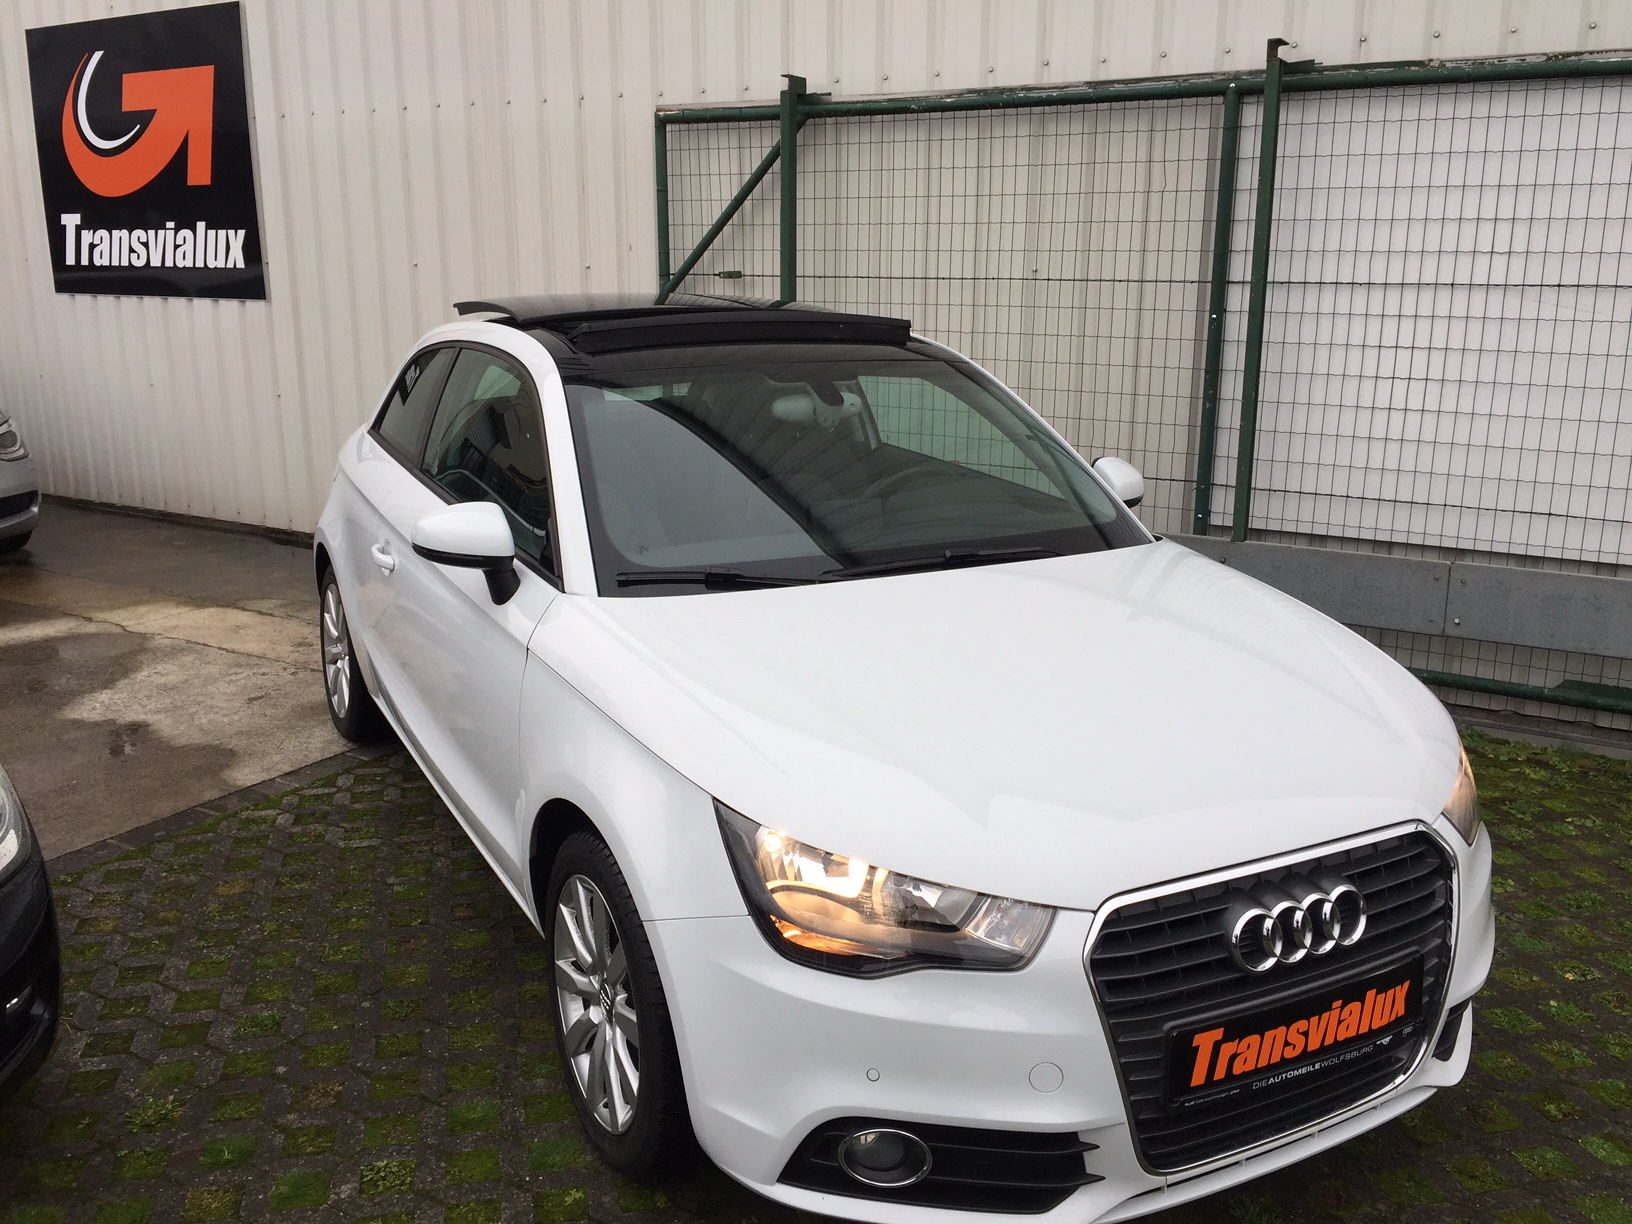 audi a1 1 6 tdi 90 ambition luxe s tronic transvialux. Black Bedroom Furniture Sets. Home Design Ideas